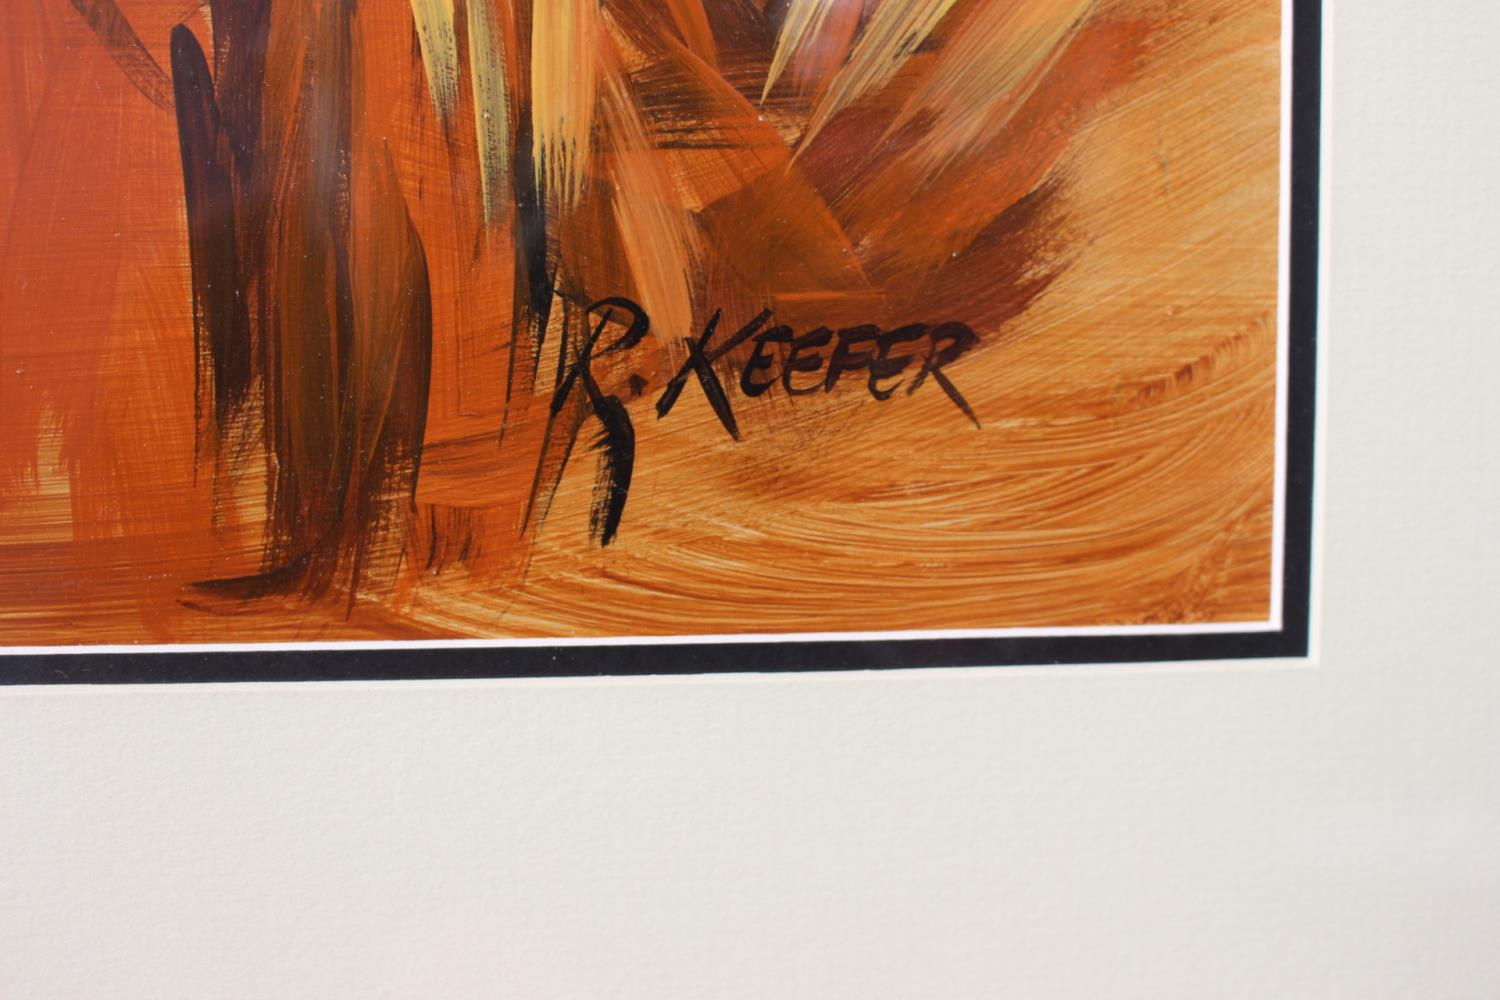 R Keefer - Rooster - Oil on Canvas - Image 2 of 2